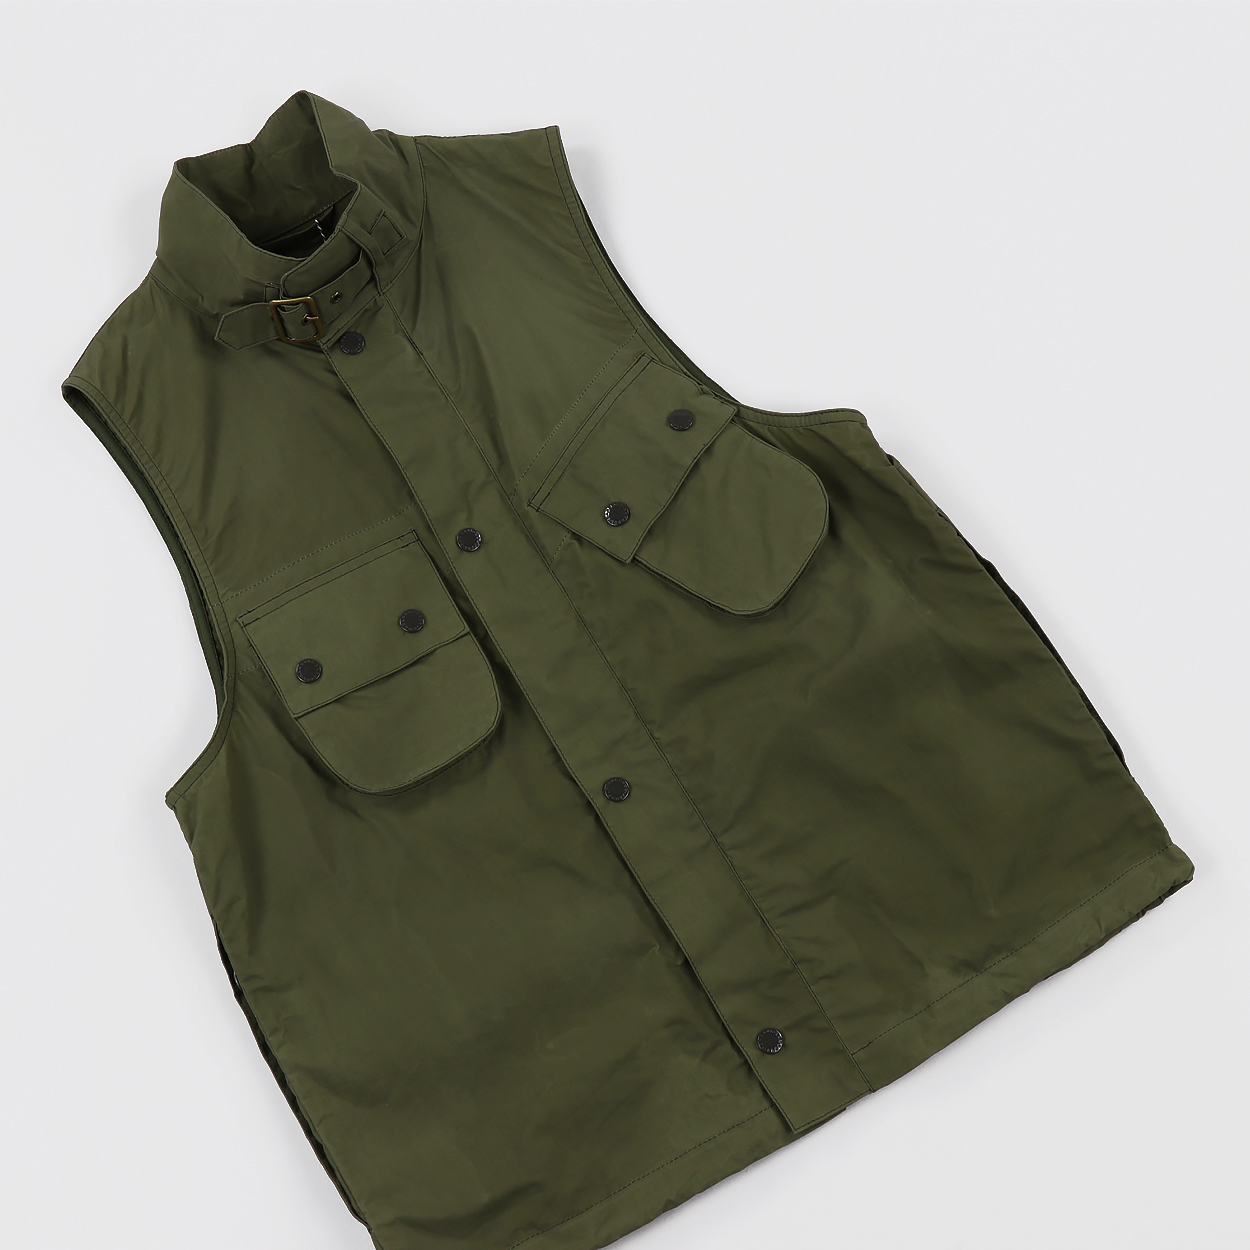 0cdcd0869d607 A functional vest from Barbour x Engineered Garment modelled on the  Westmorland gilet. The jacket is made from 100% cotton canvas with an  adjustable fit.